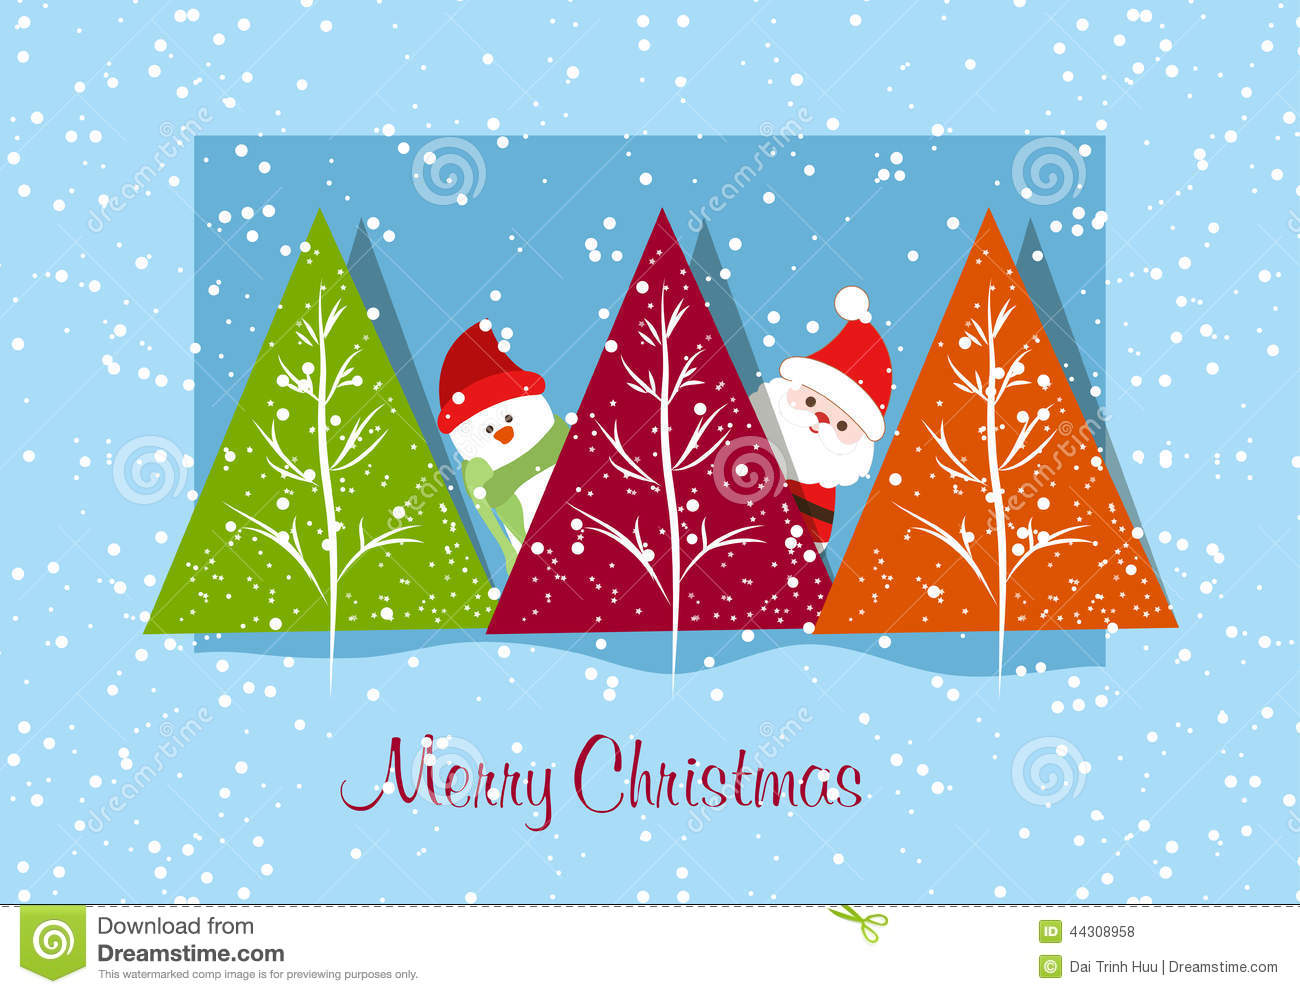 Merry Christmas Card With Santa Claus Snowman And